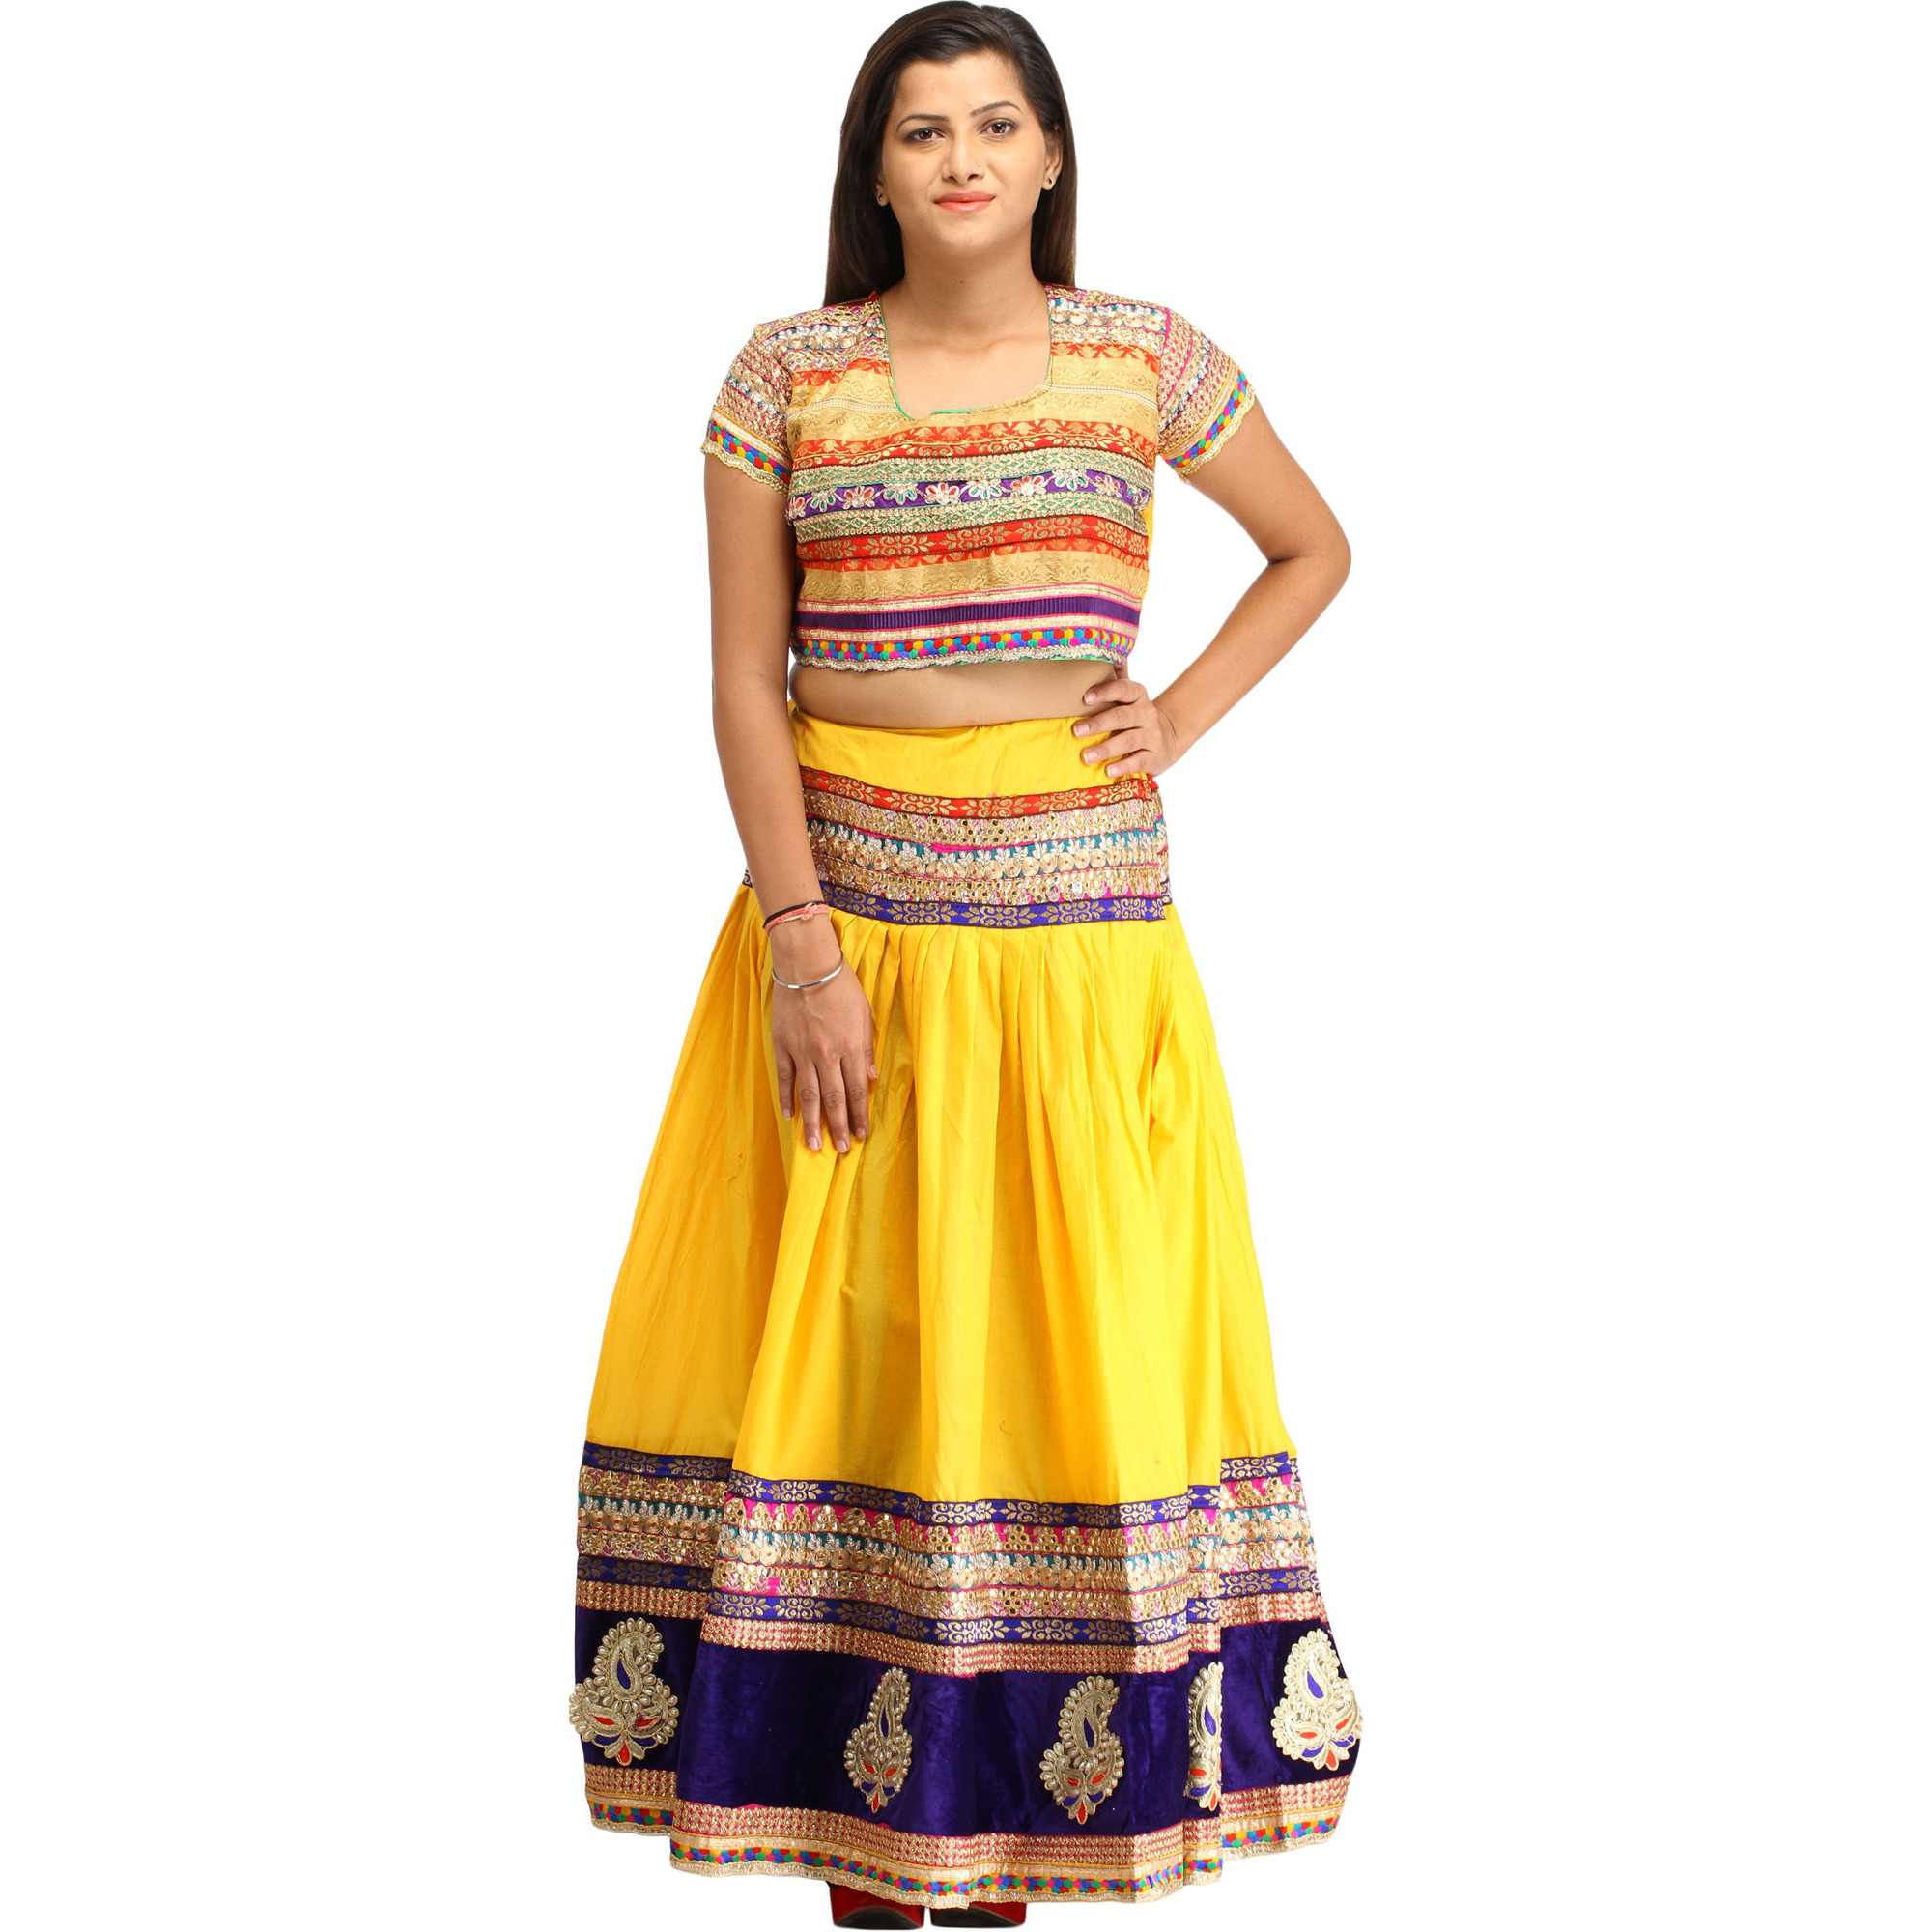 Spectrum-Yellow Two-Piece Lehenga Choli with Zari-Embroidery and Paisley Patches on Border